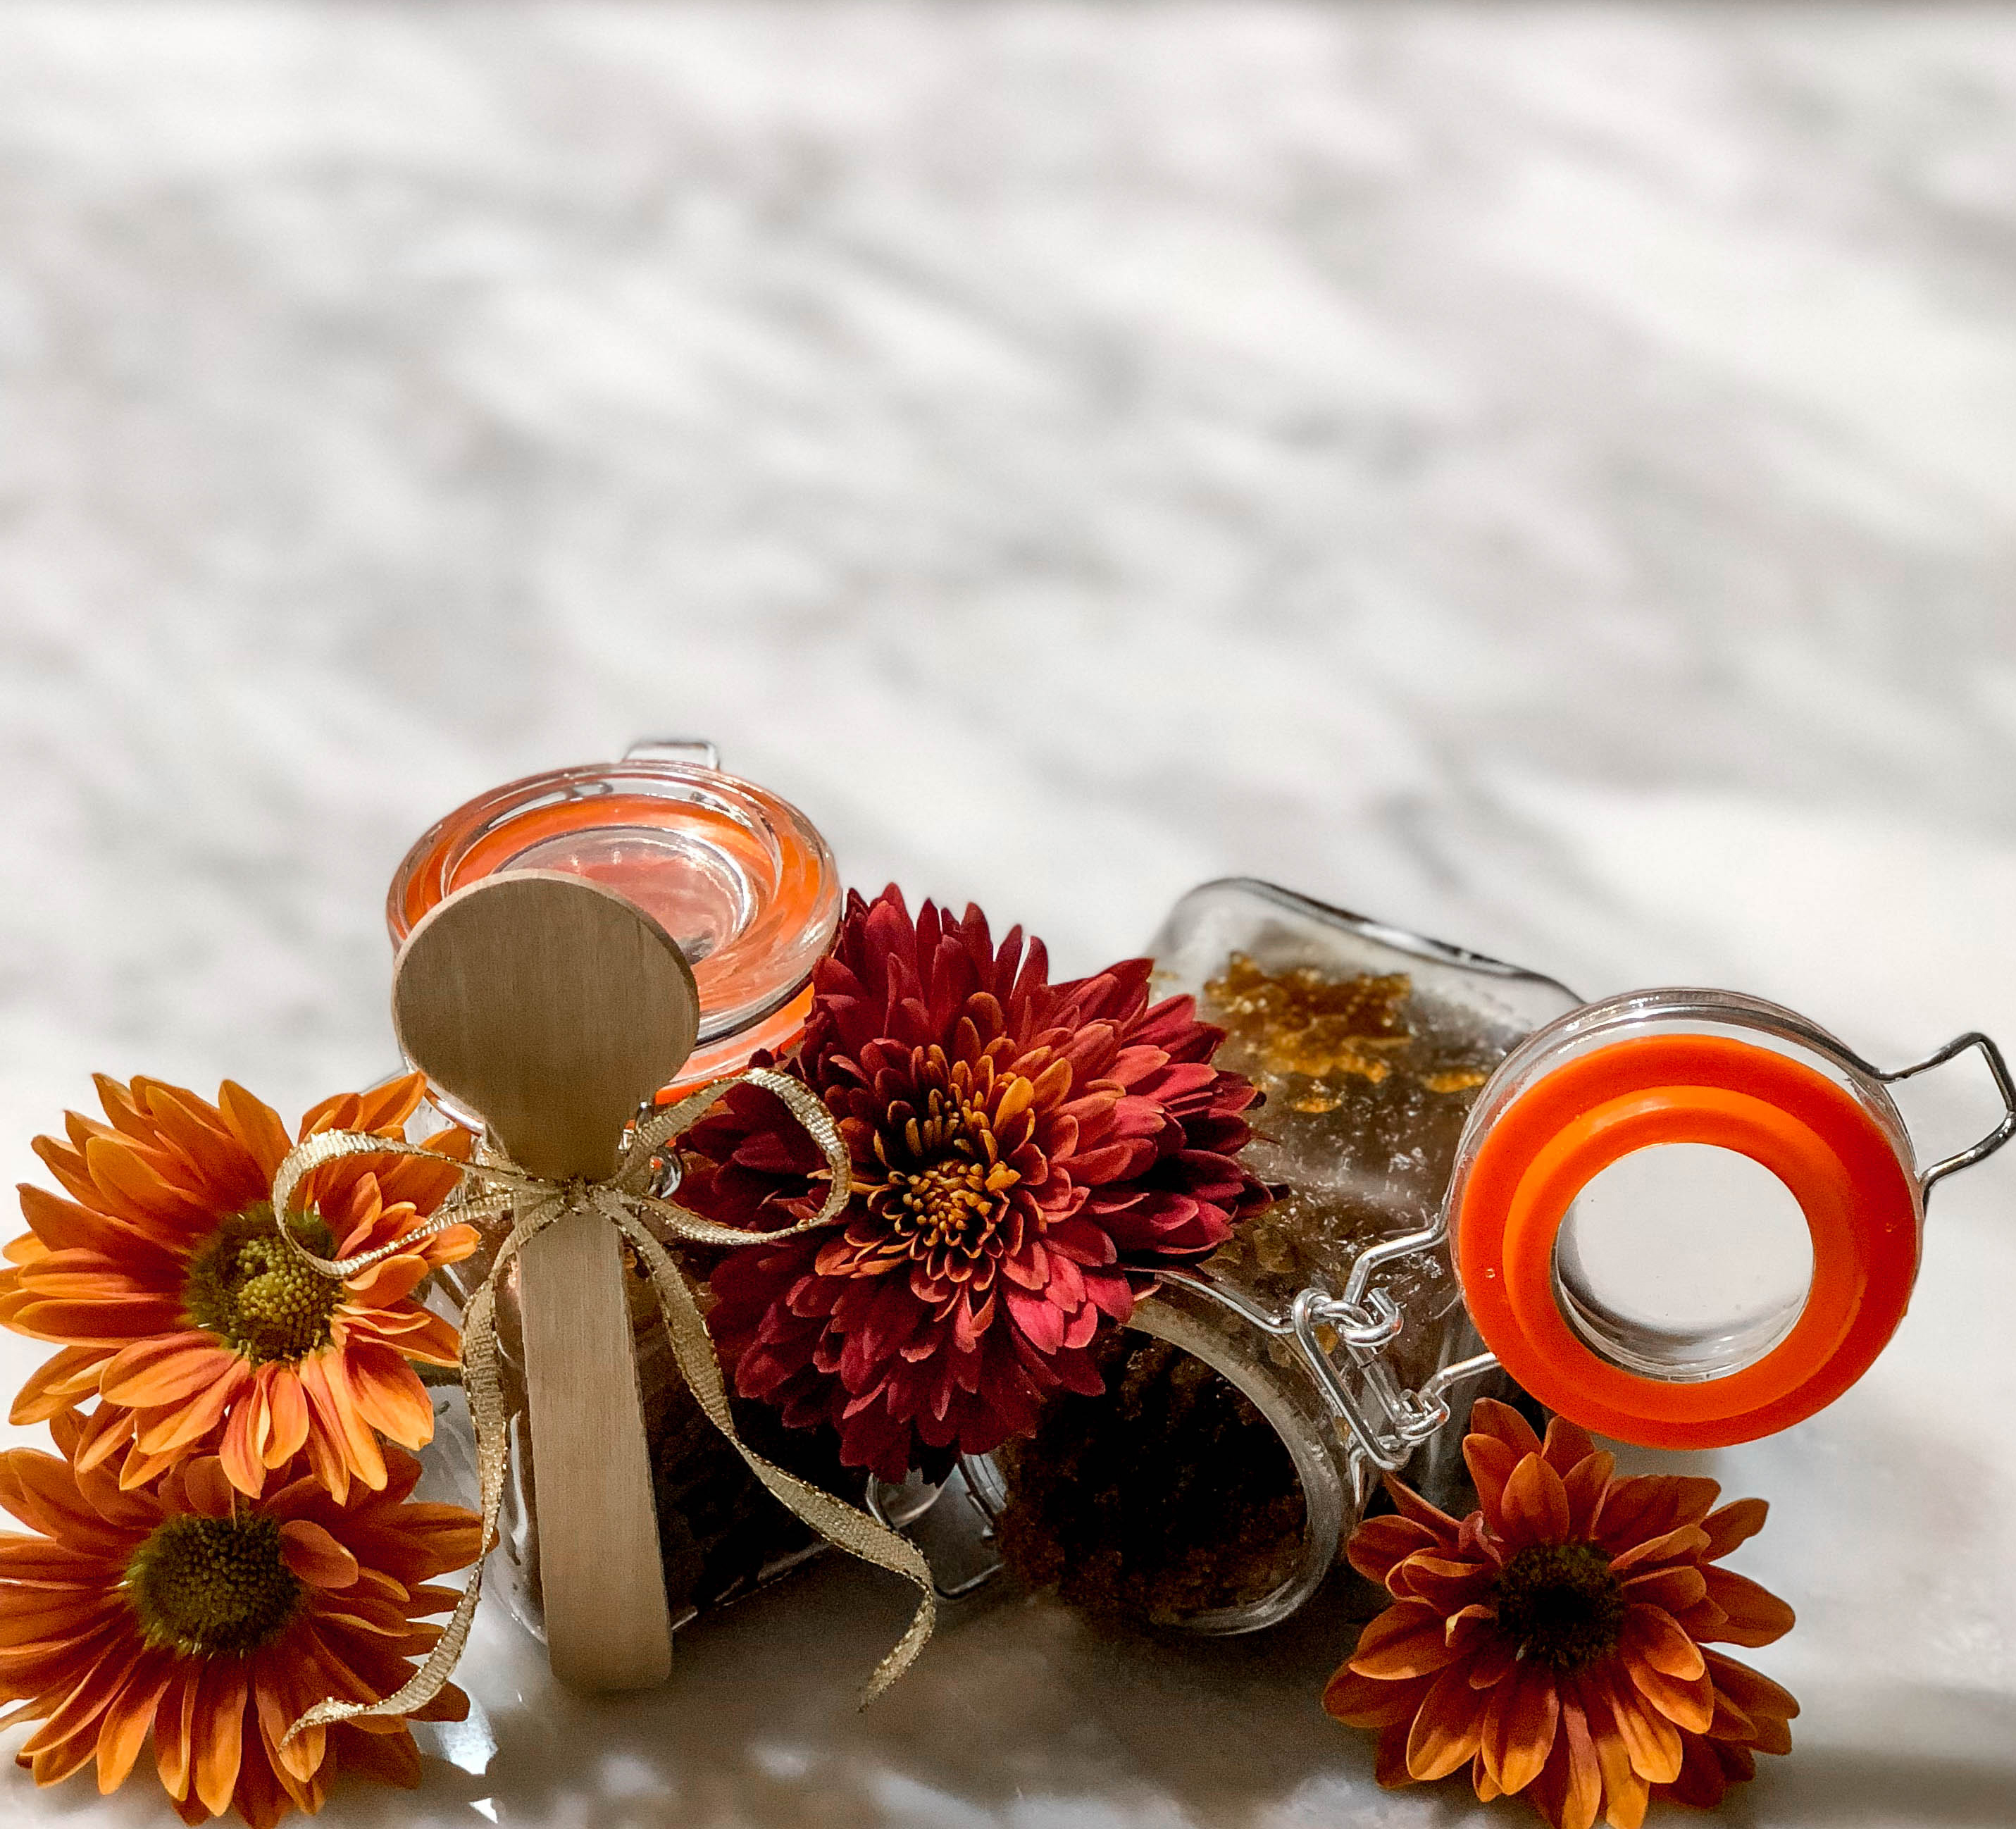 pumpkin body sugar scrub - Holiday Sugar Body Scrub by Atlanta style blogger Happily Hughes